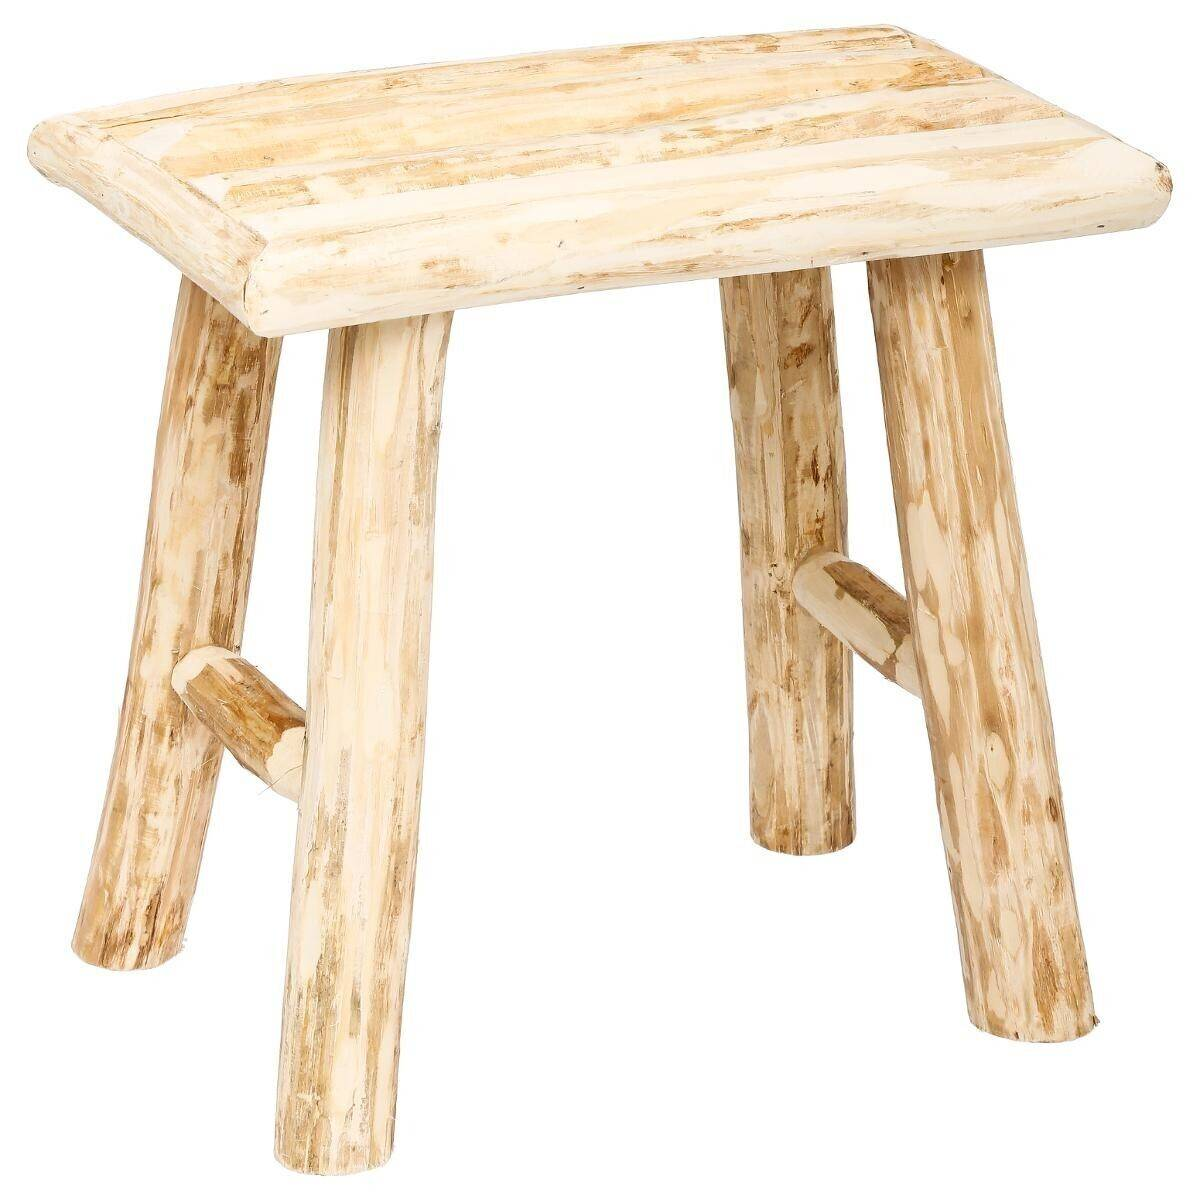 Atmosphera Tabouret